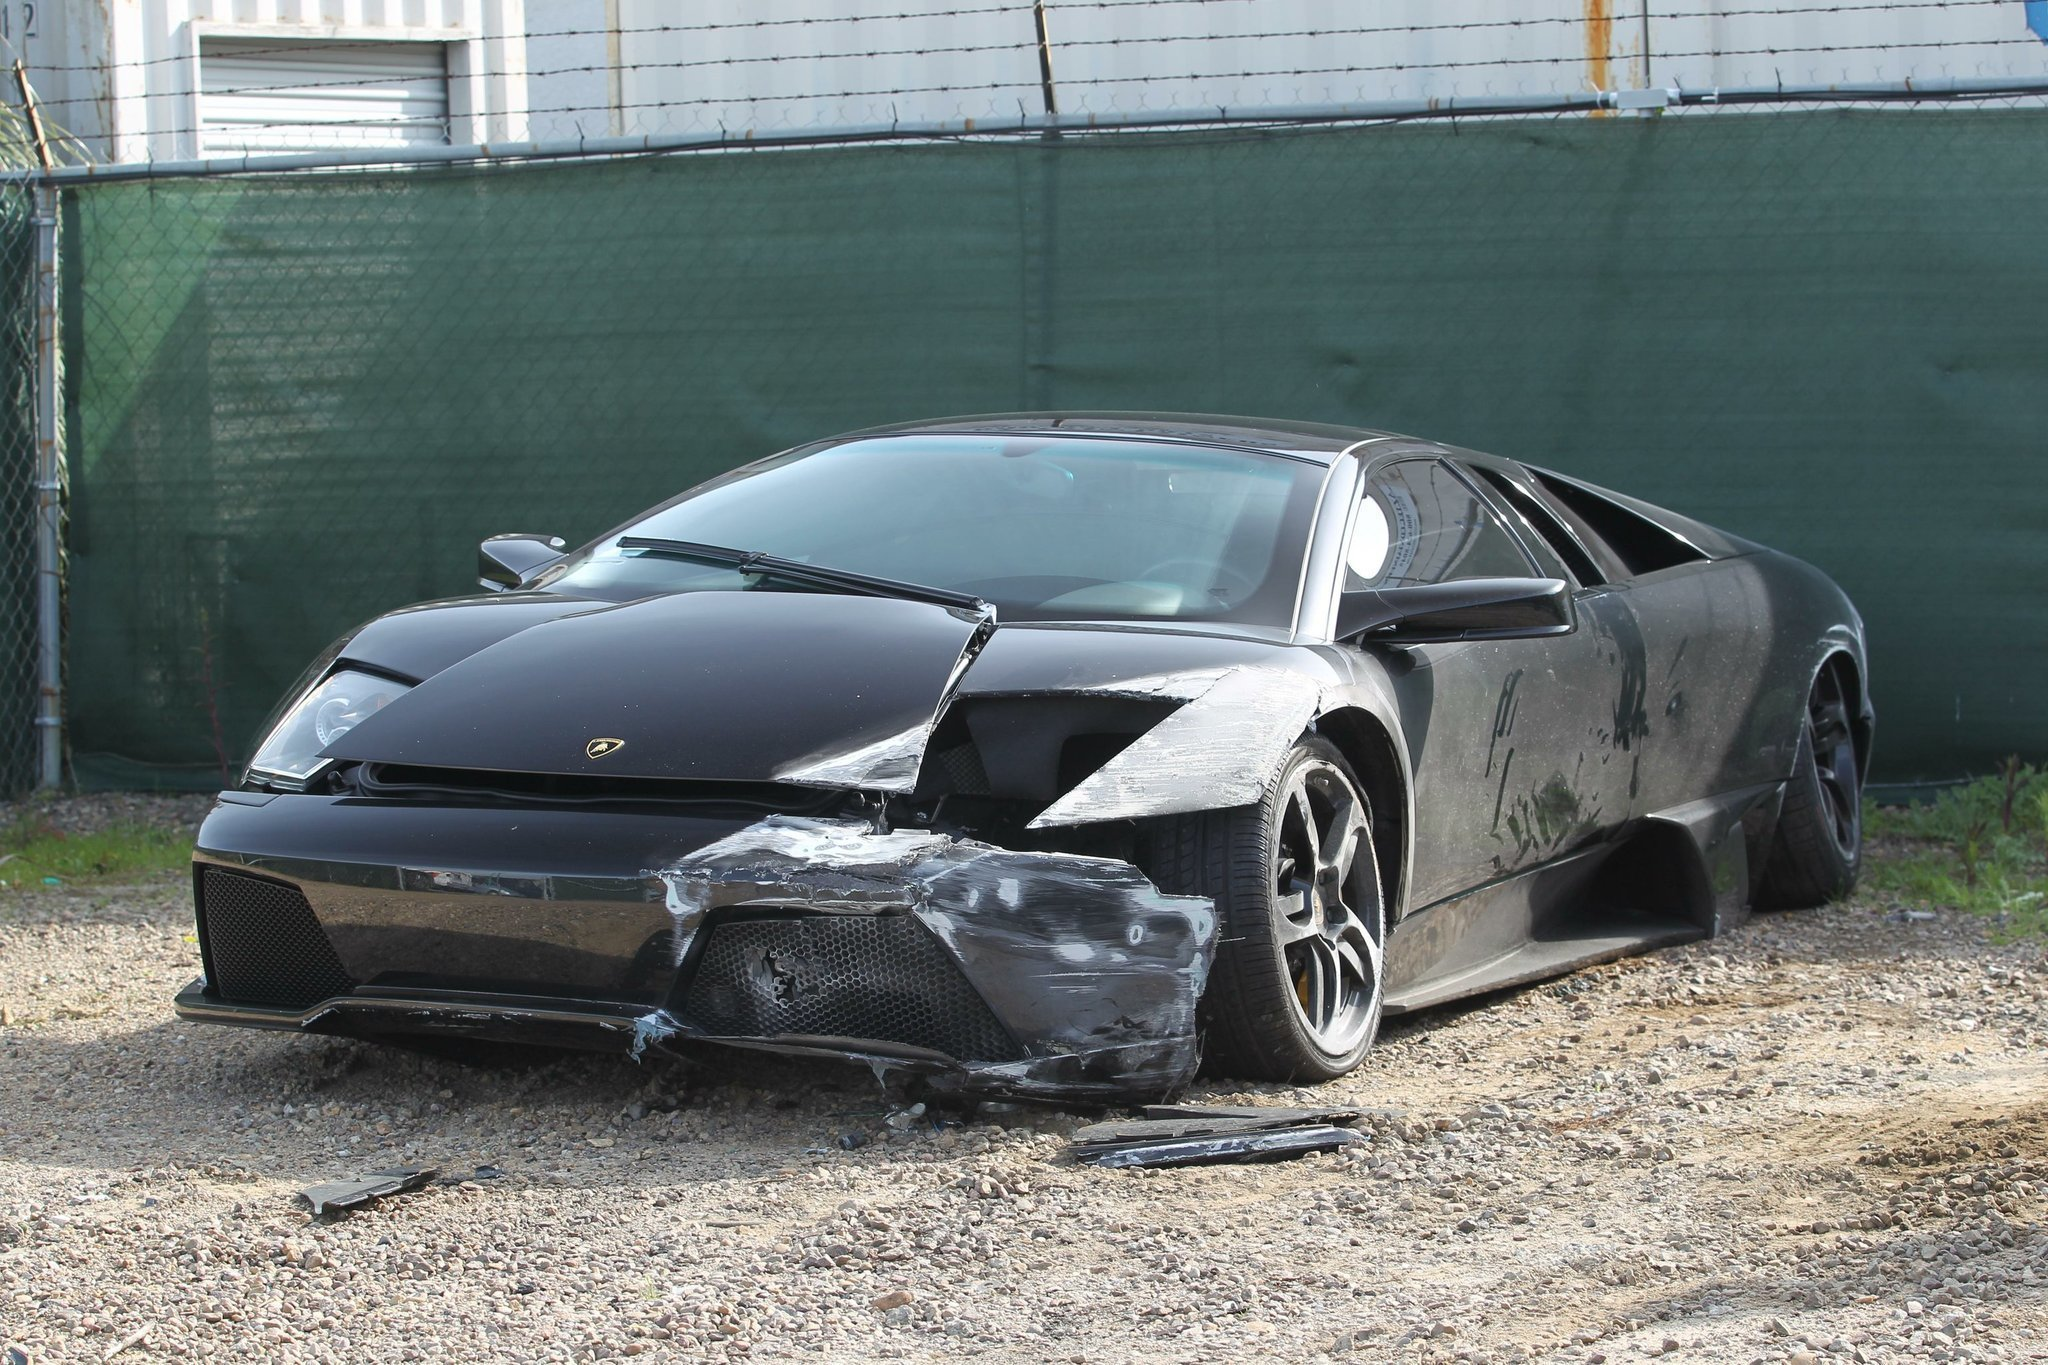 Crashed Lamborghini Still Not Claimed The San Diego